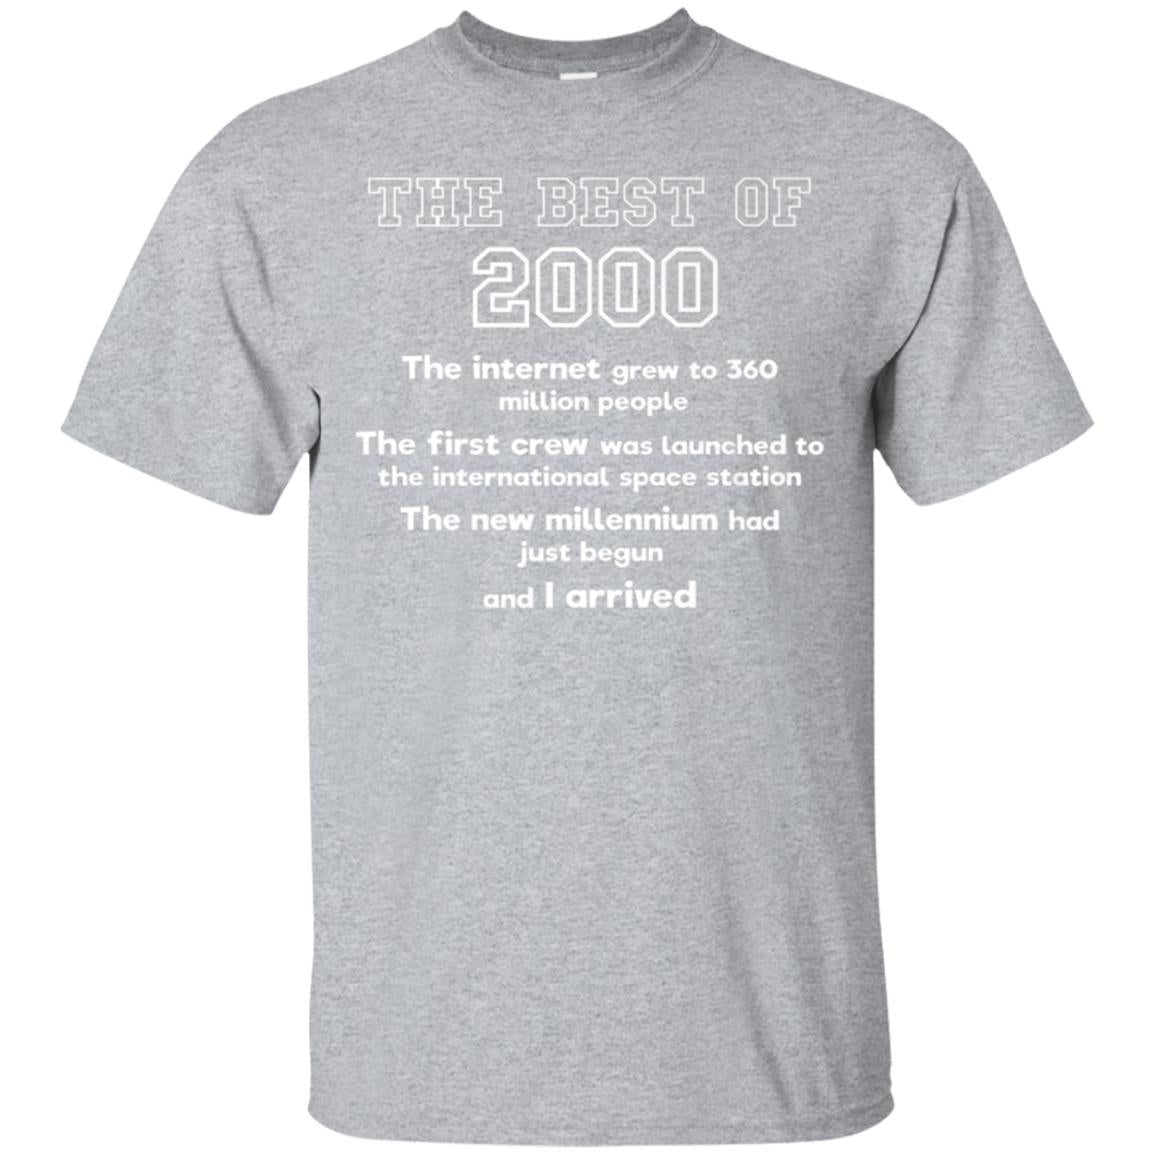 2000 18th birthday T shirt gift for 18 year old boys & girls 99promocode